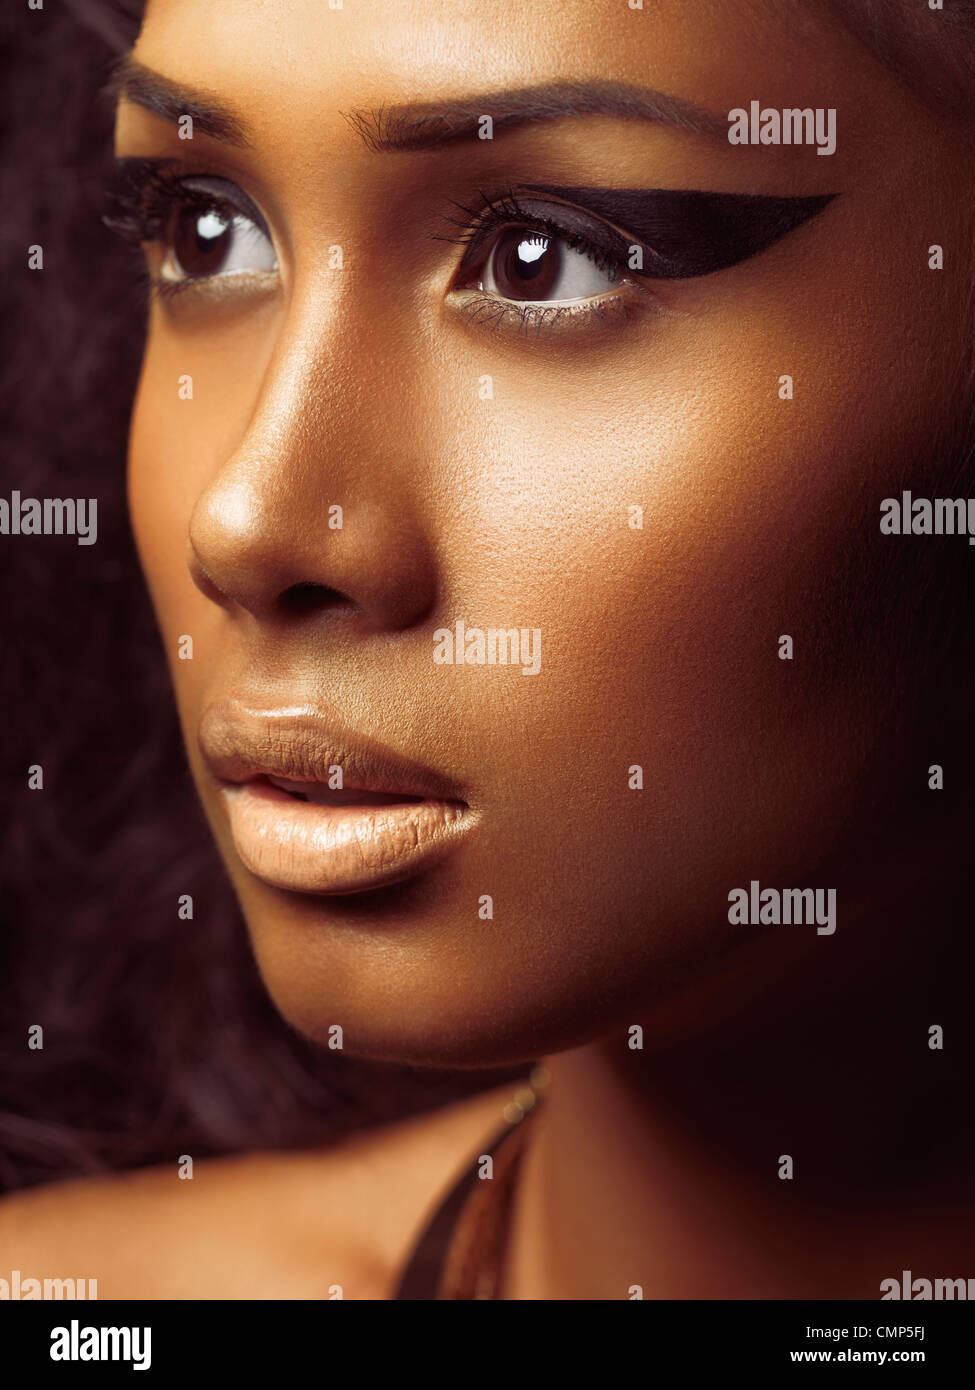 Exotic closeup beauty portrait of a young beautiful woman's face with golden skin and artistic makeup - Stock Image